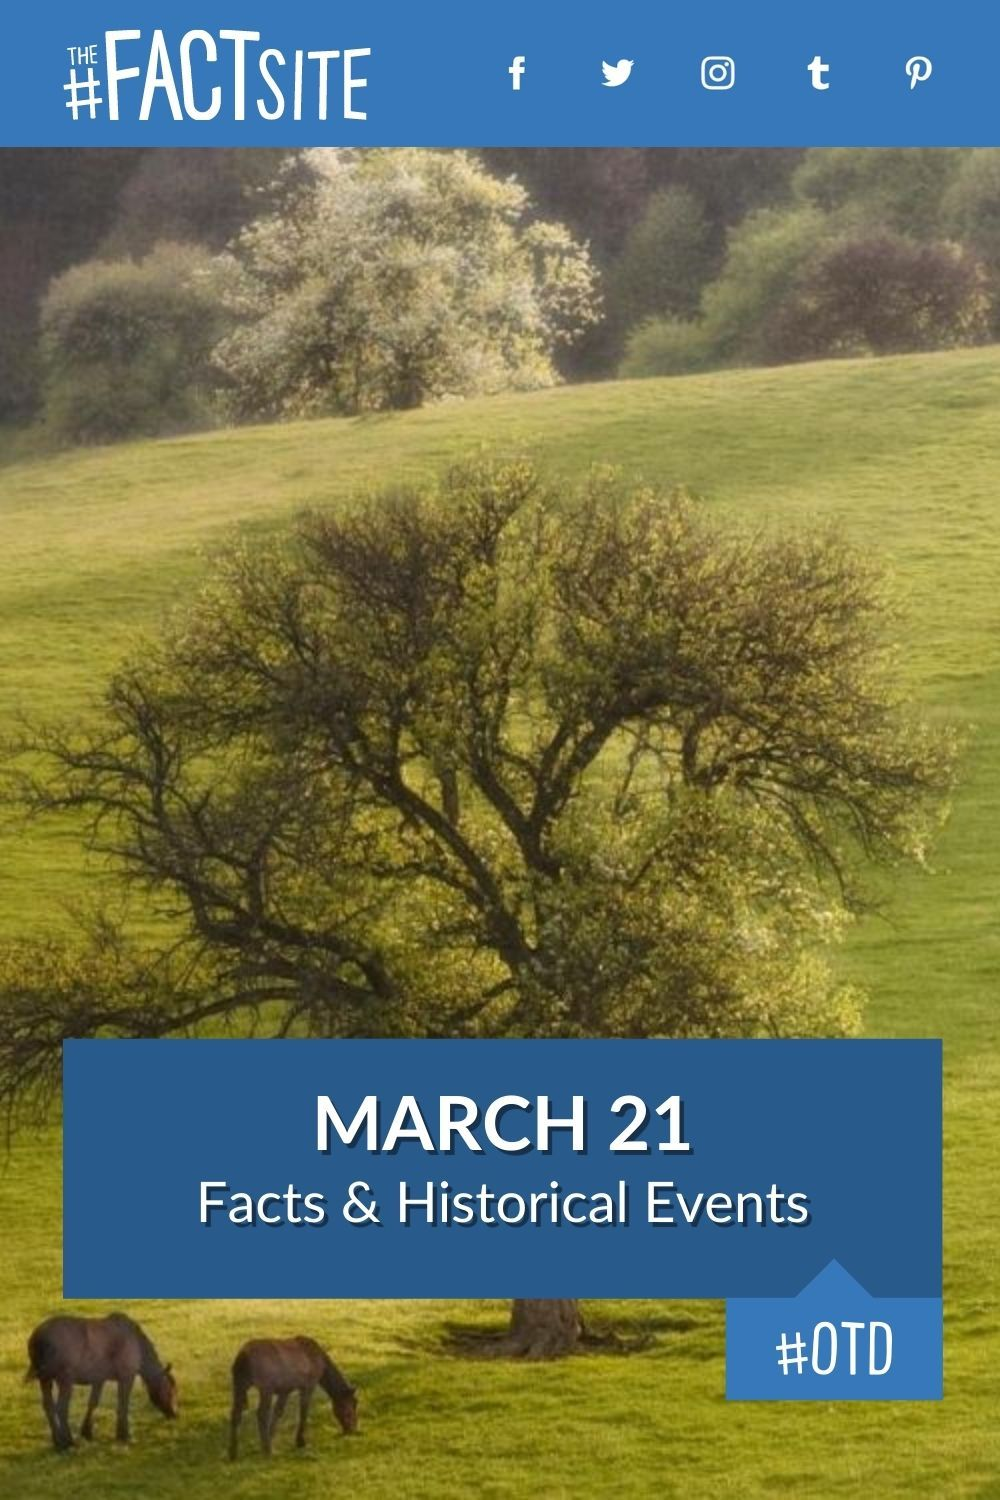 Facts & Historic Events That Happened on March 21